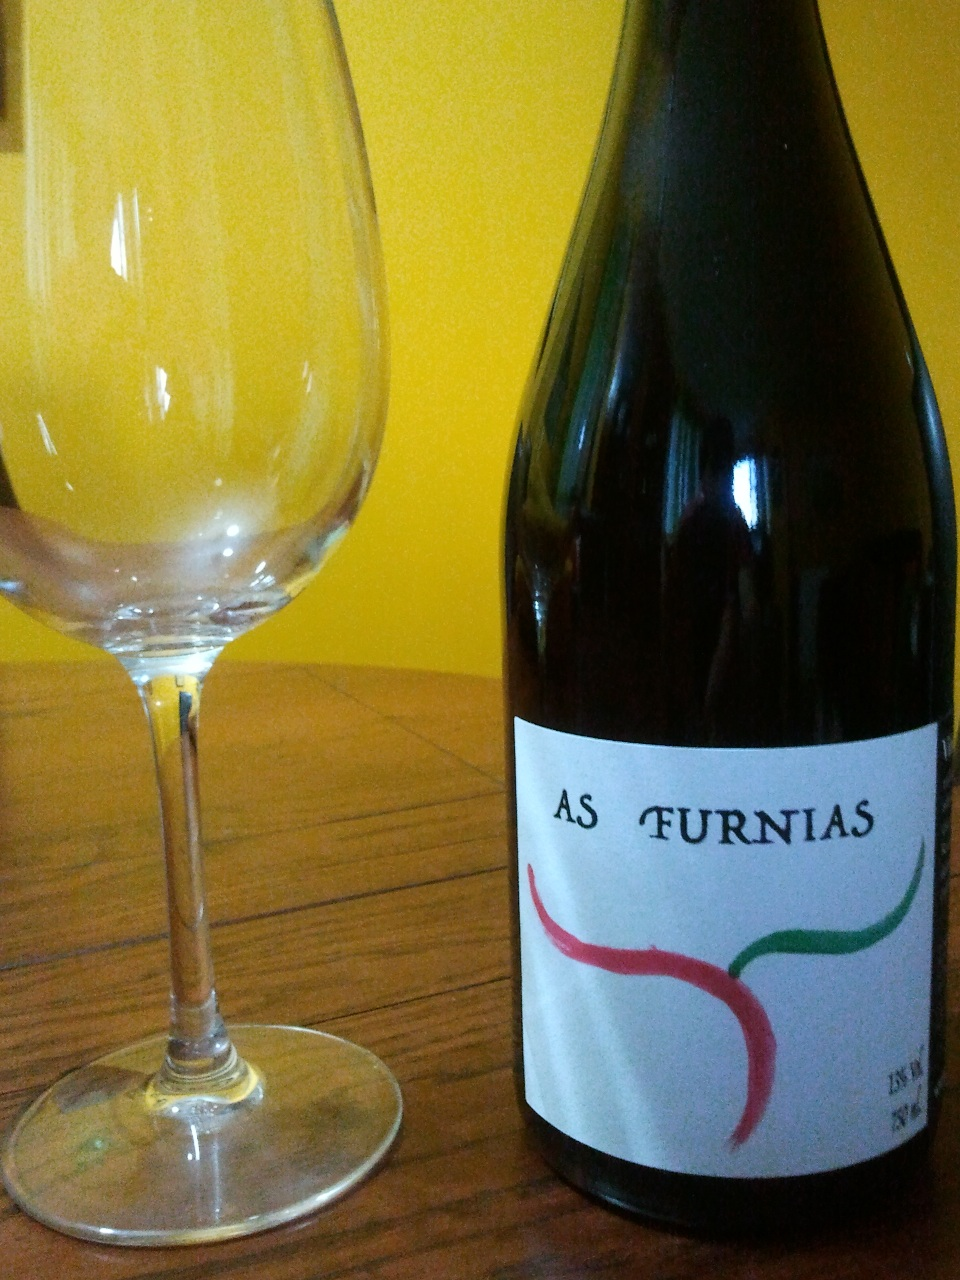 Botella de As Furnias